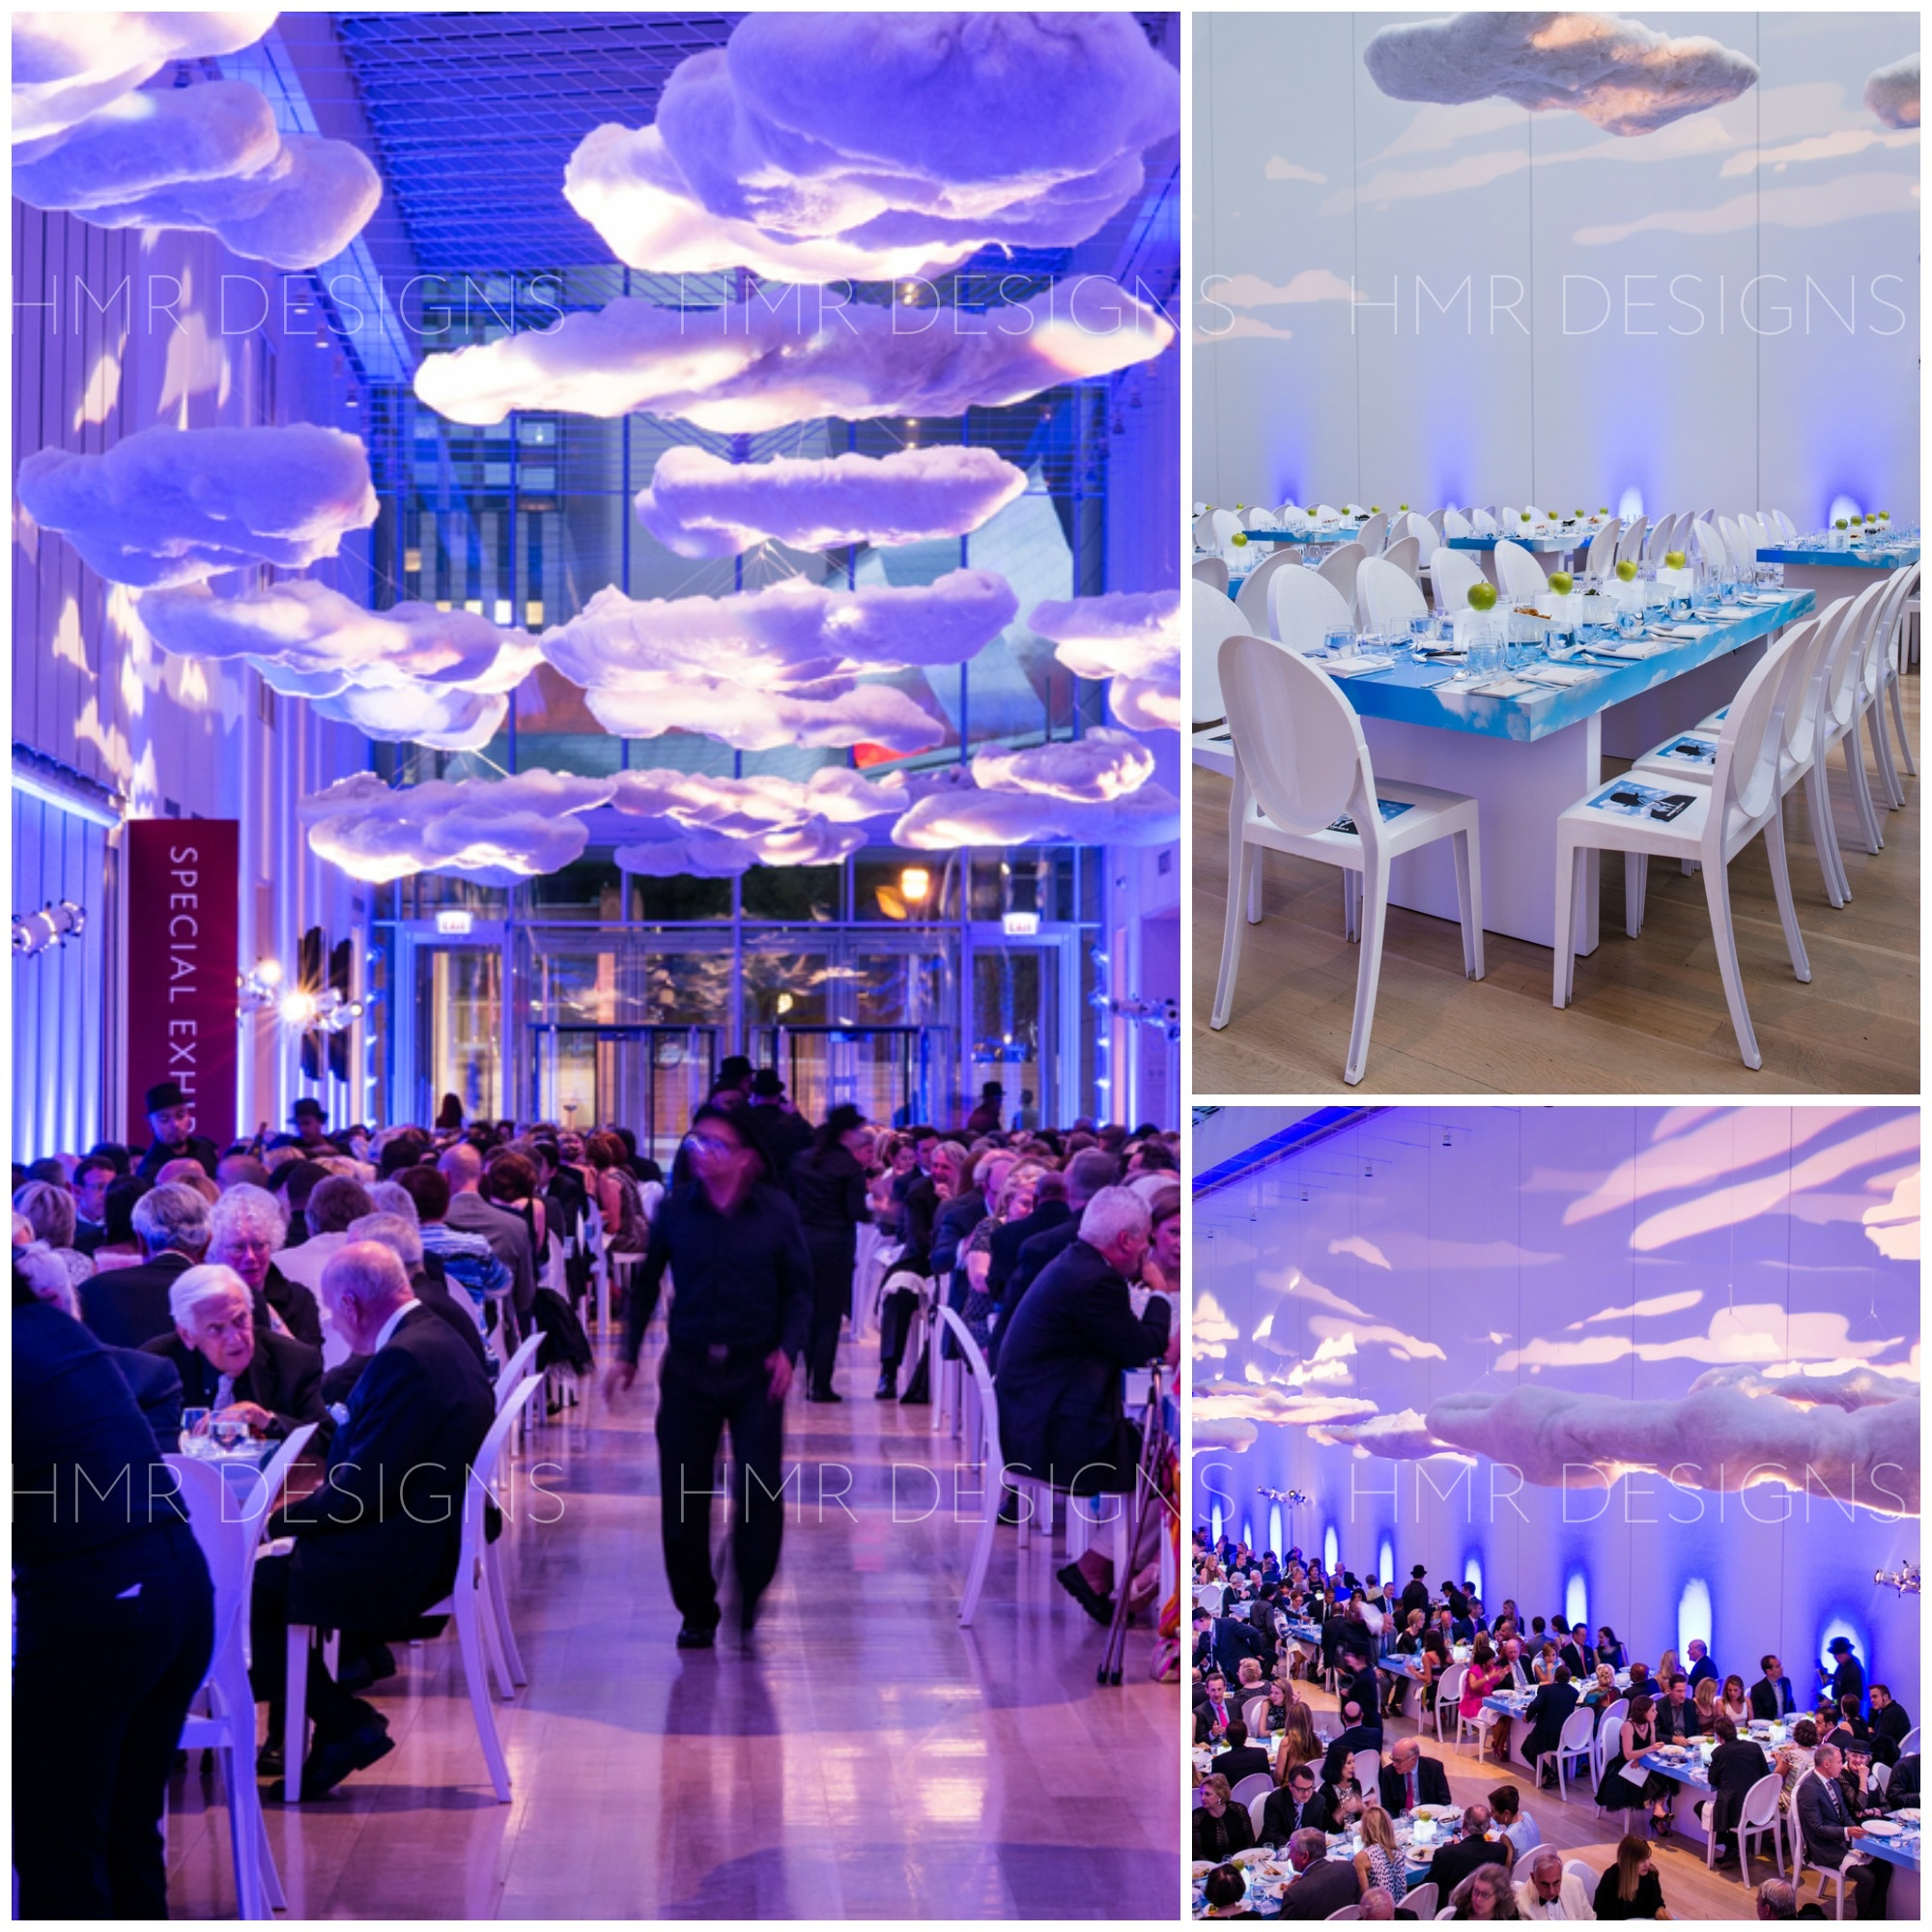 Magritte Gala decor by HMR Designs